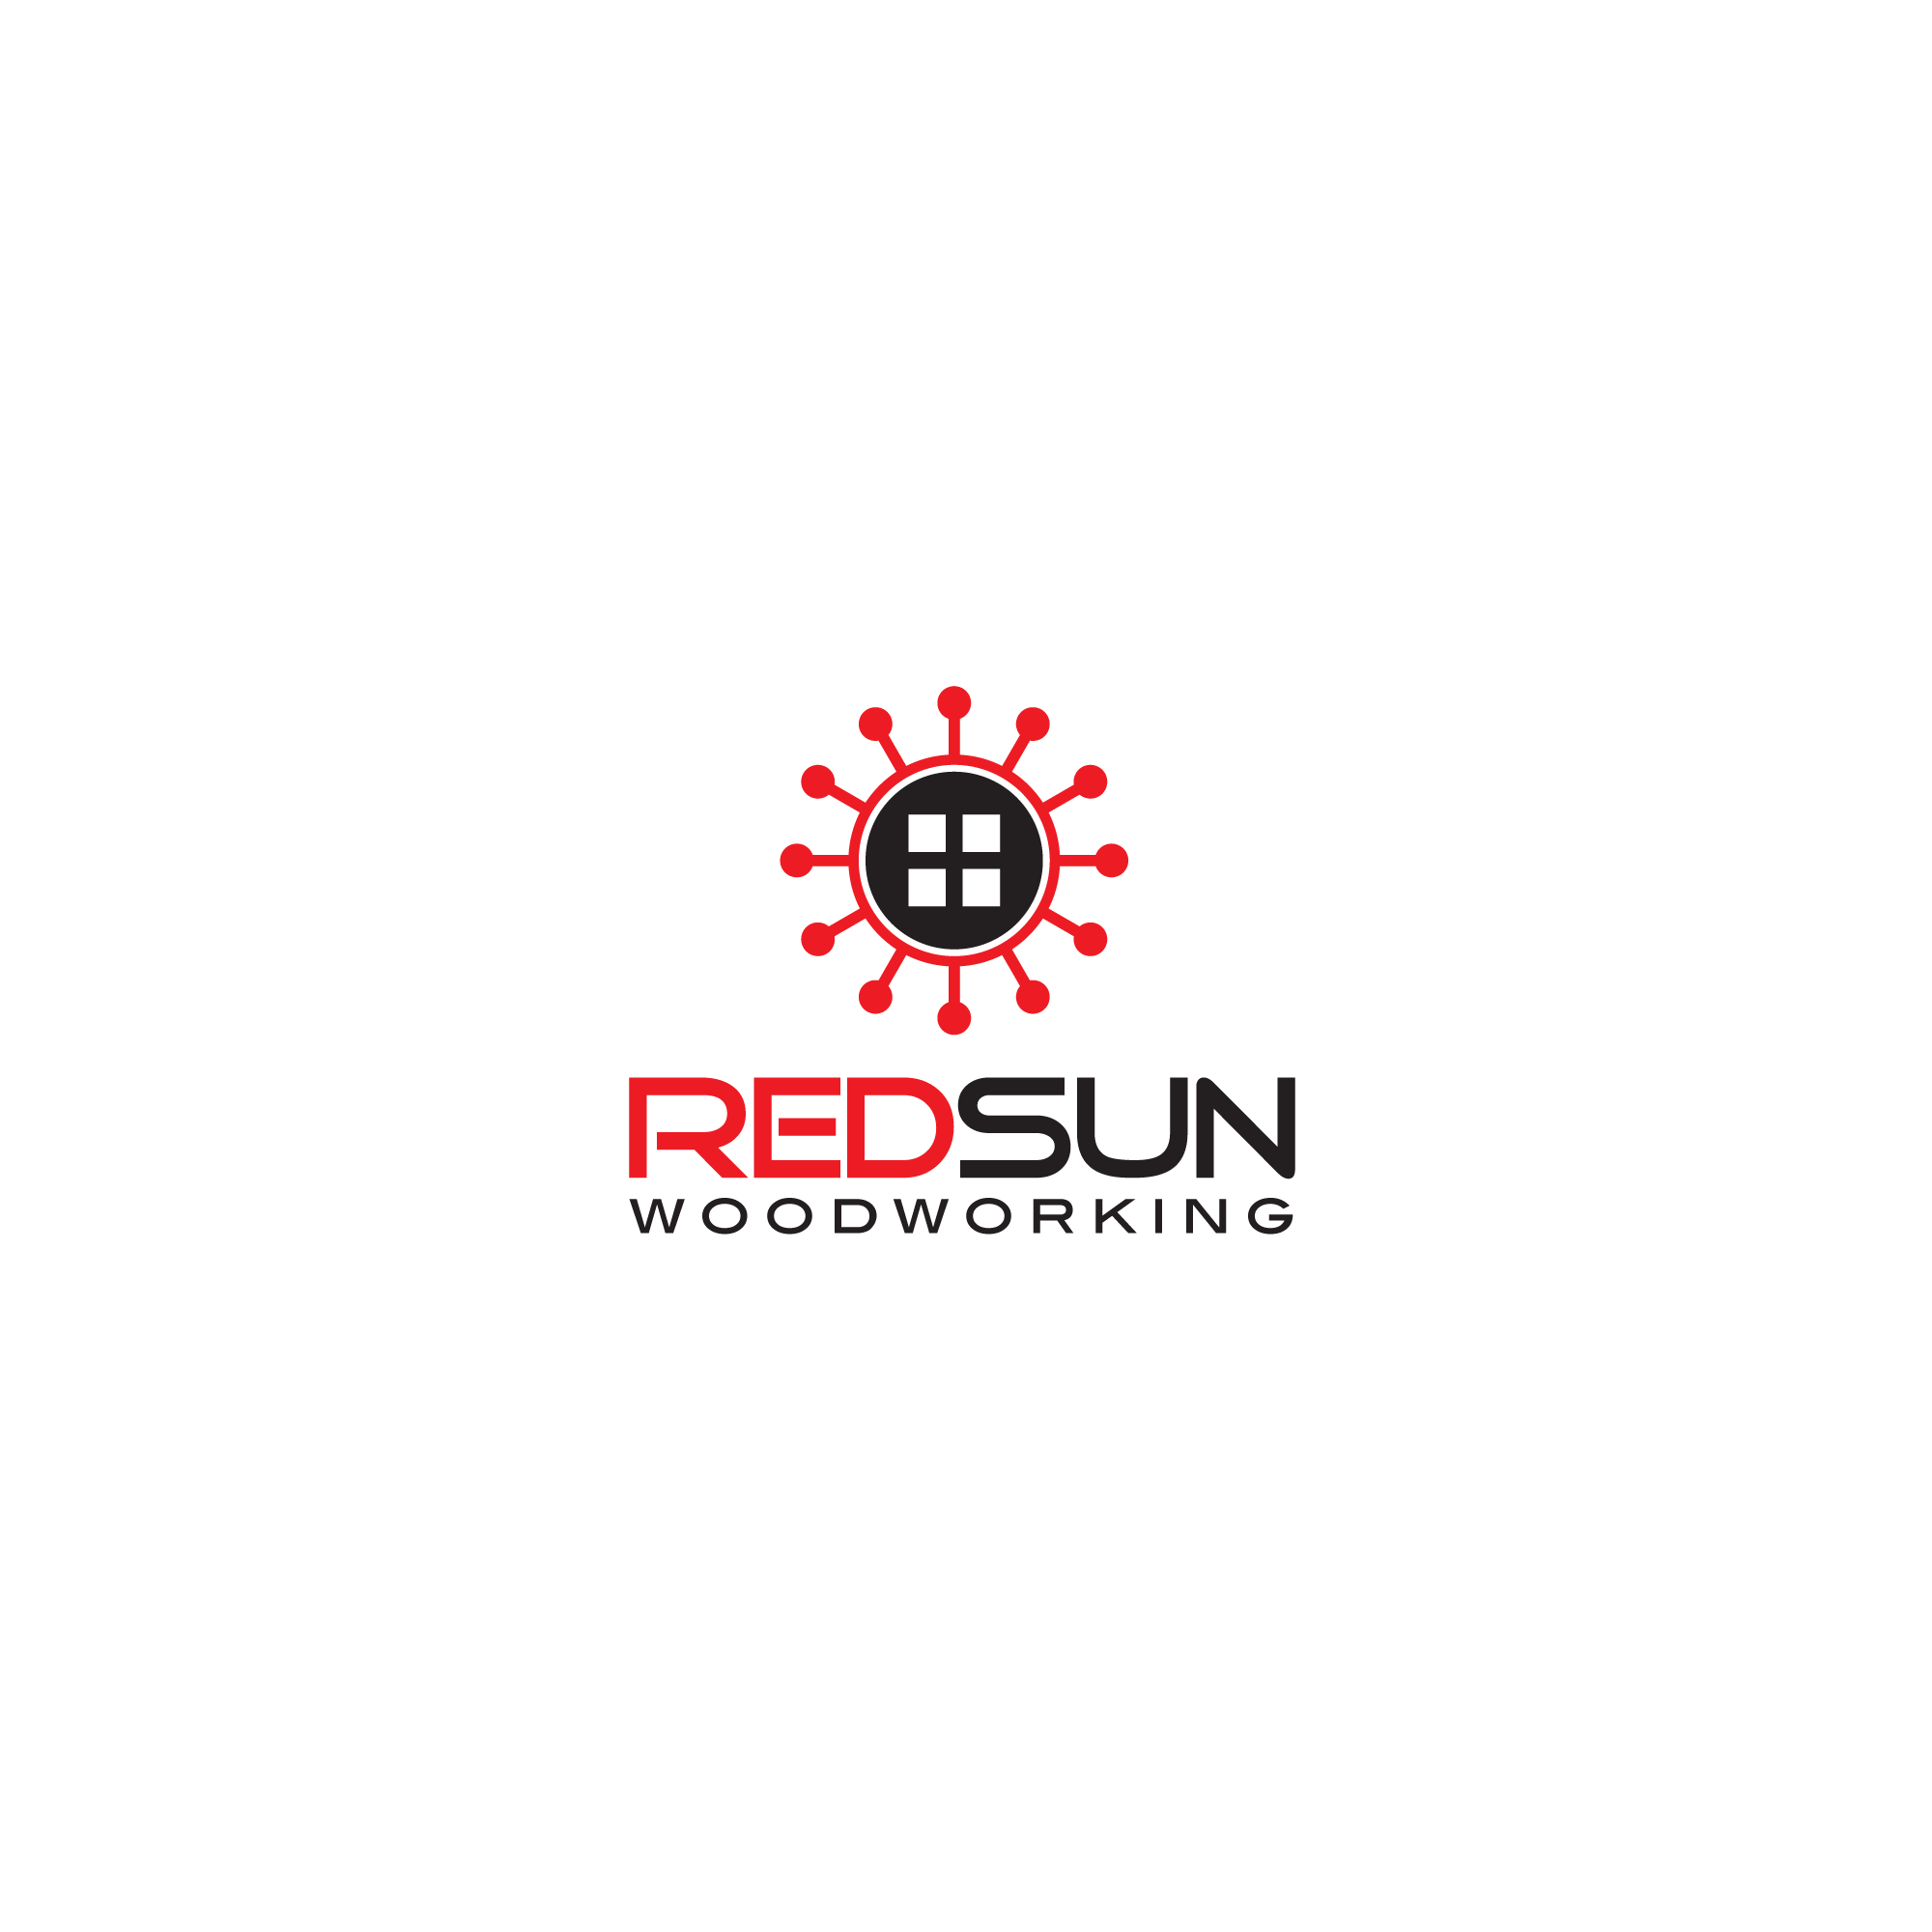 Logo Design by Mrs Suhartini - Entry No. 138 in the Logo Design Contest Red Sun Woodworking Logo Design.